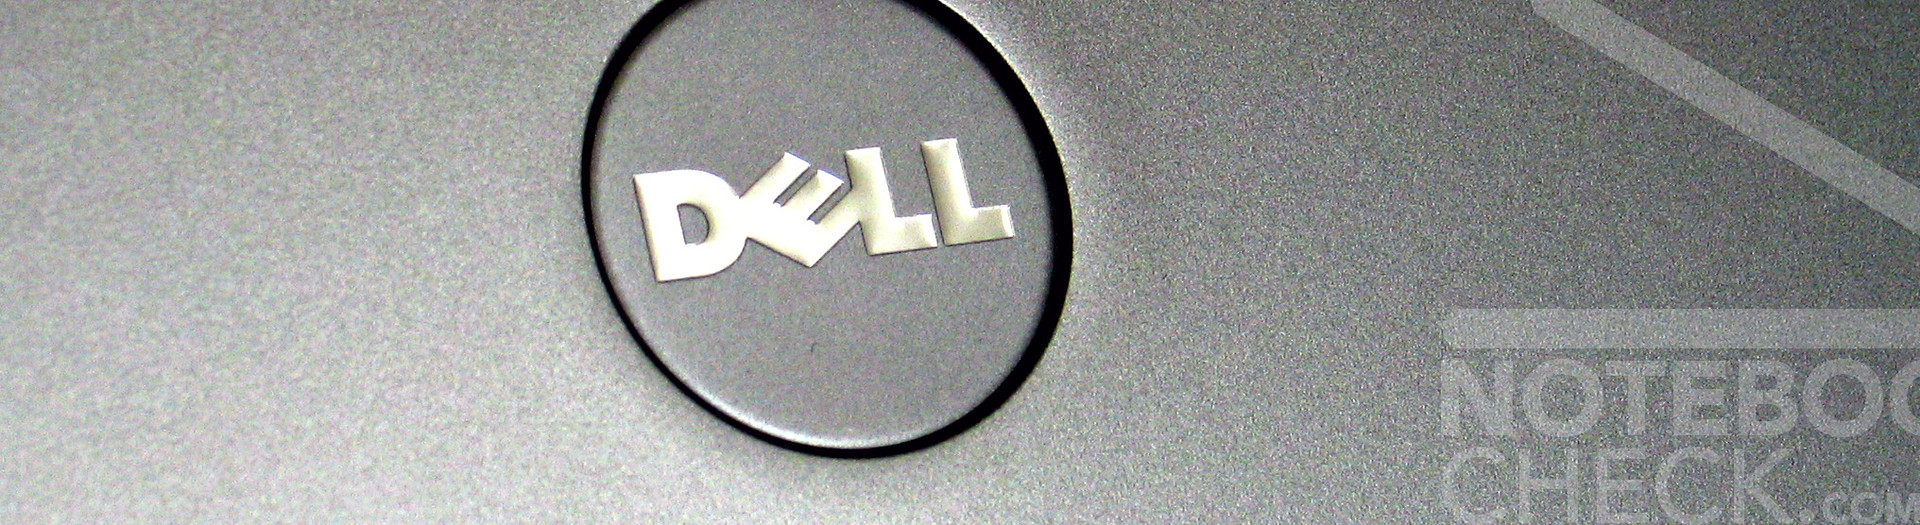 Review Dell Inspiron 9400 Notebookcheck Reviews